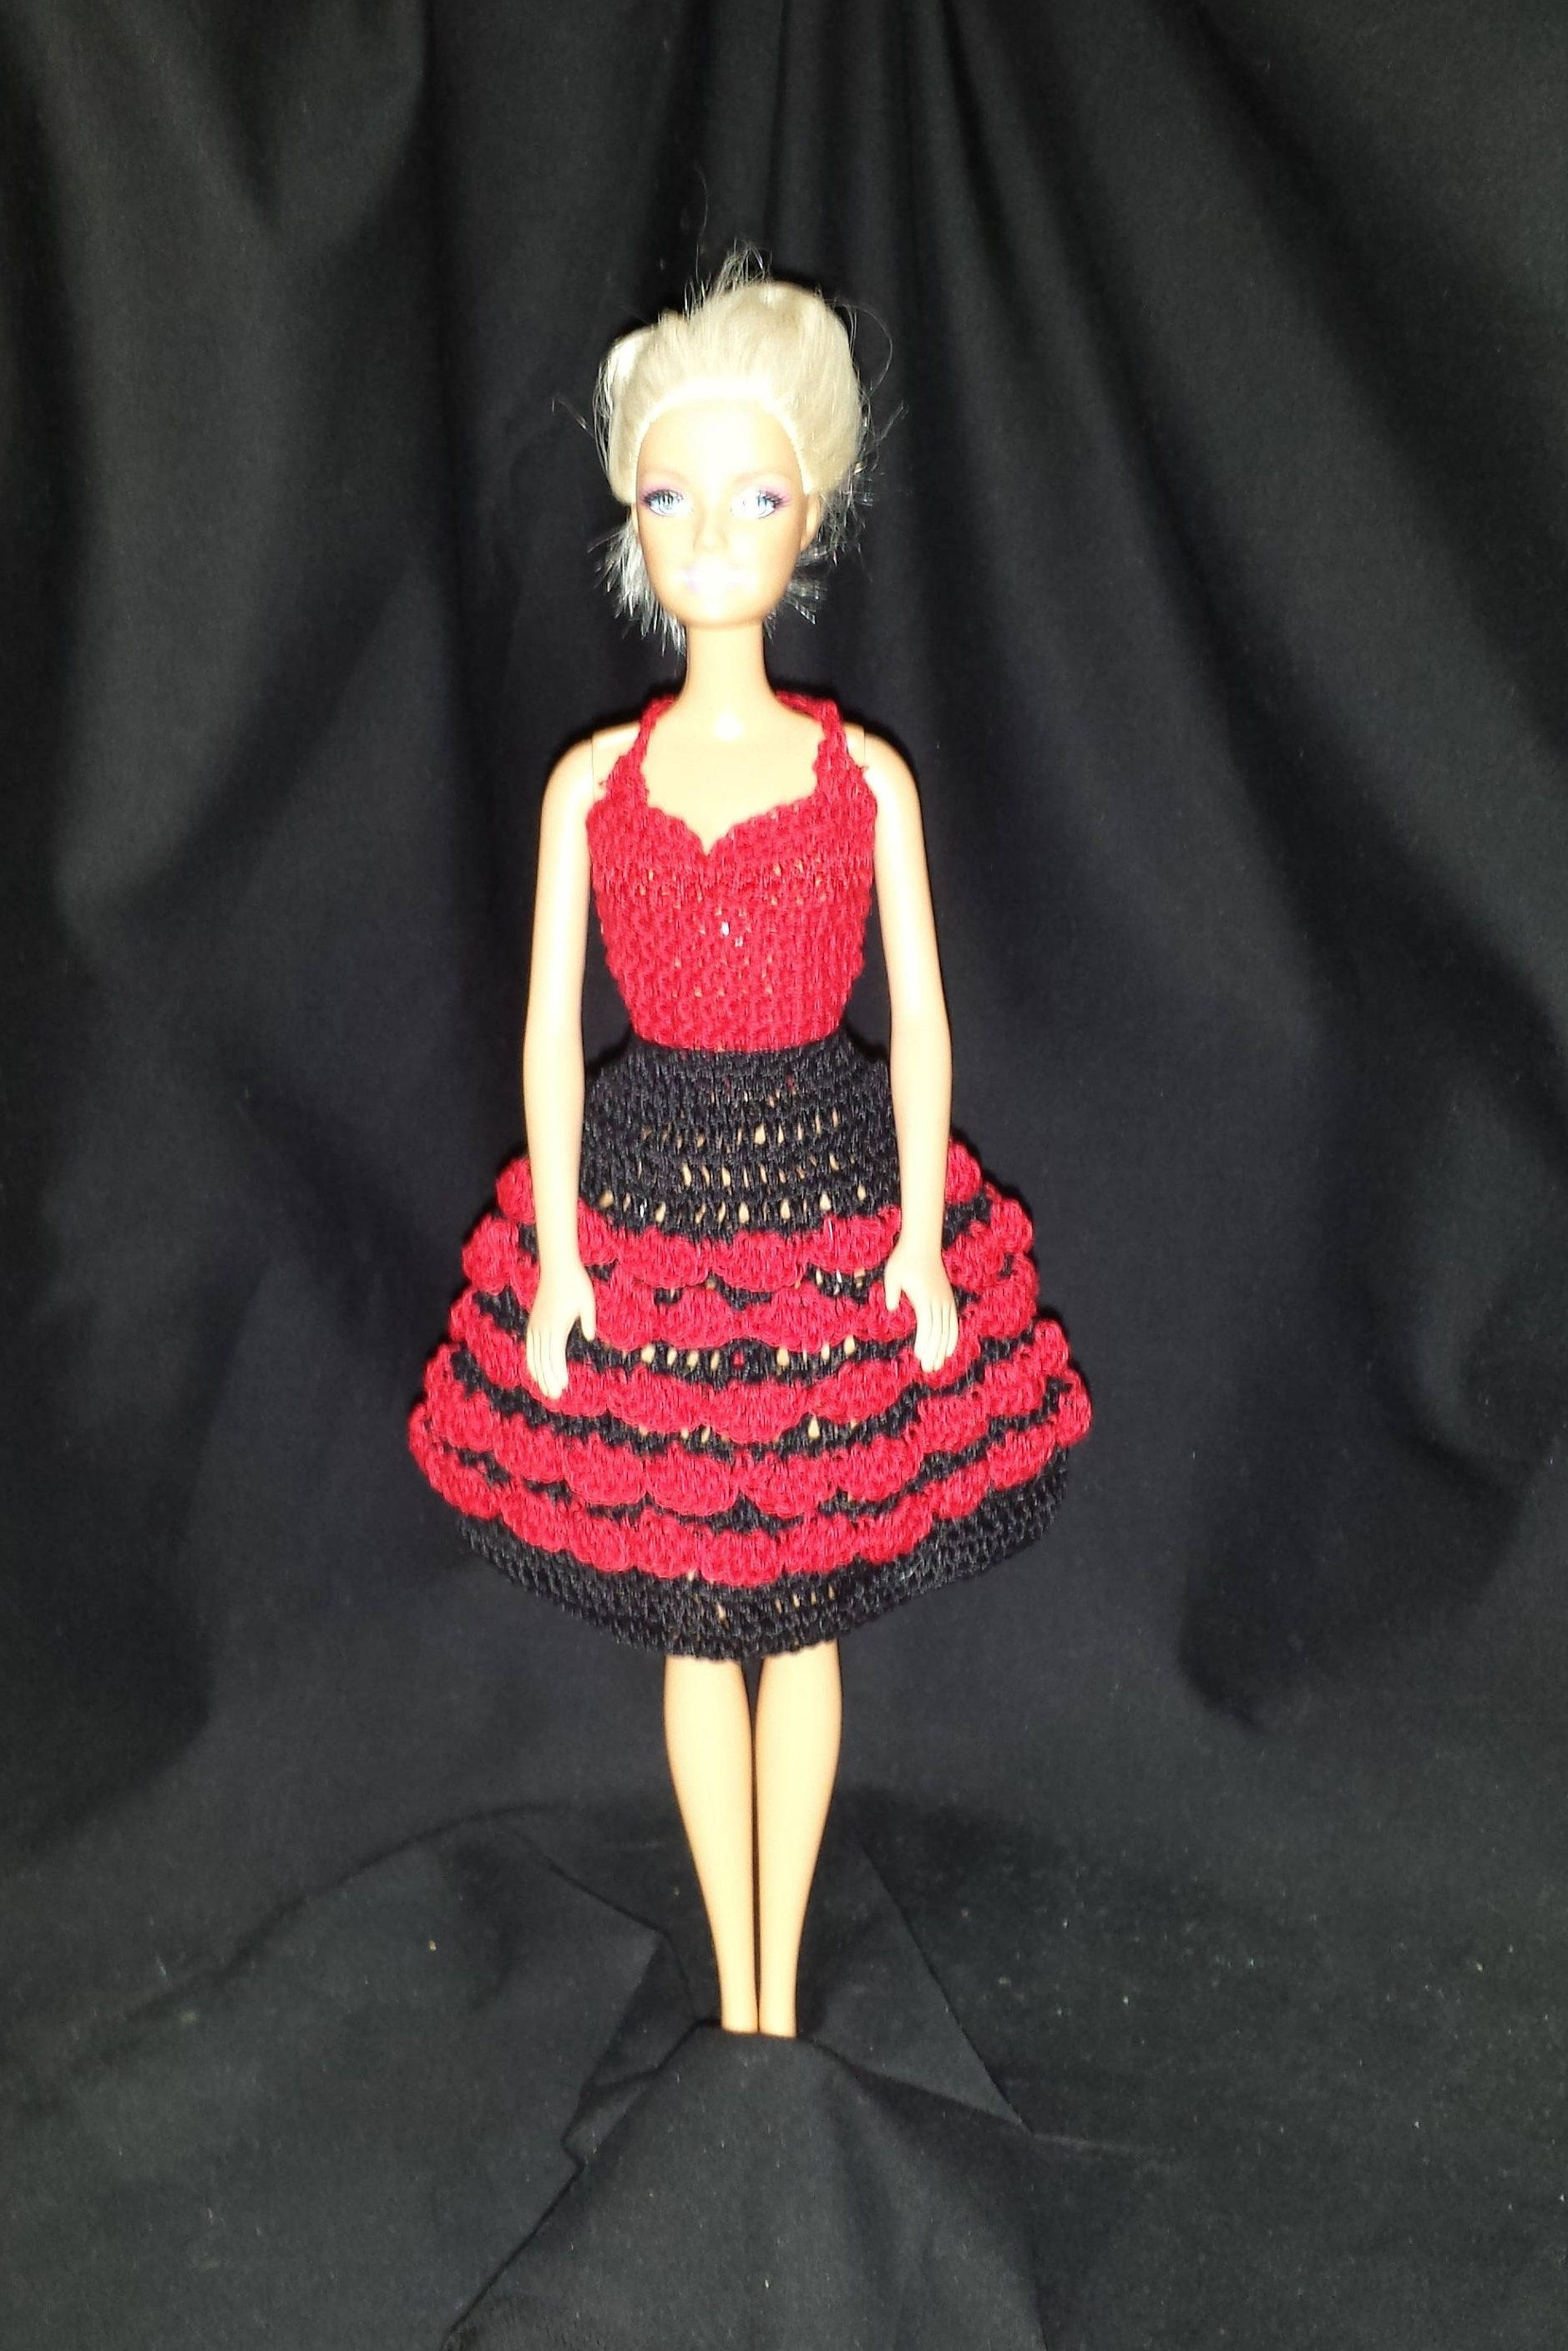 Ruffled Skirt and Halter Top For Barbie or Fashion Doll 11 1/2 ...